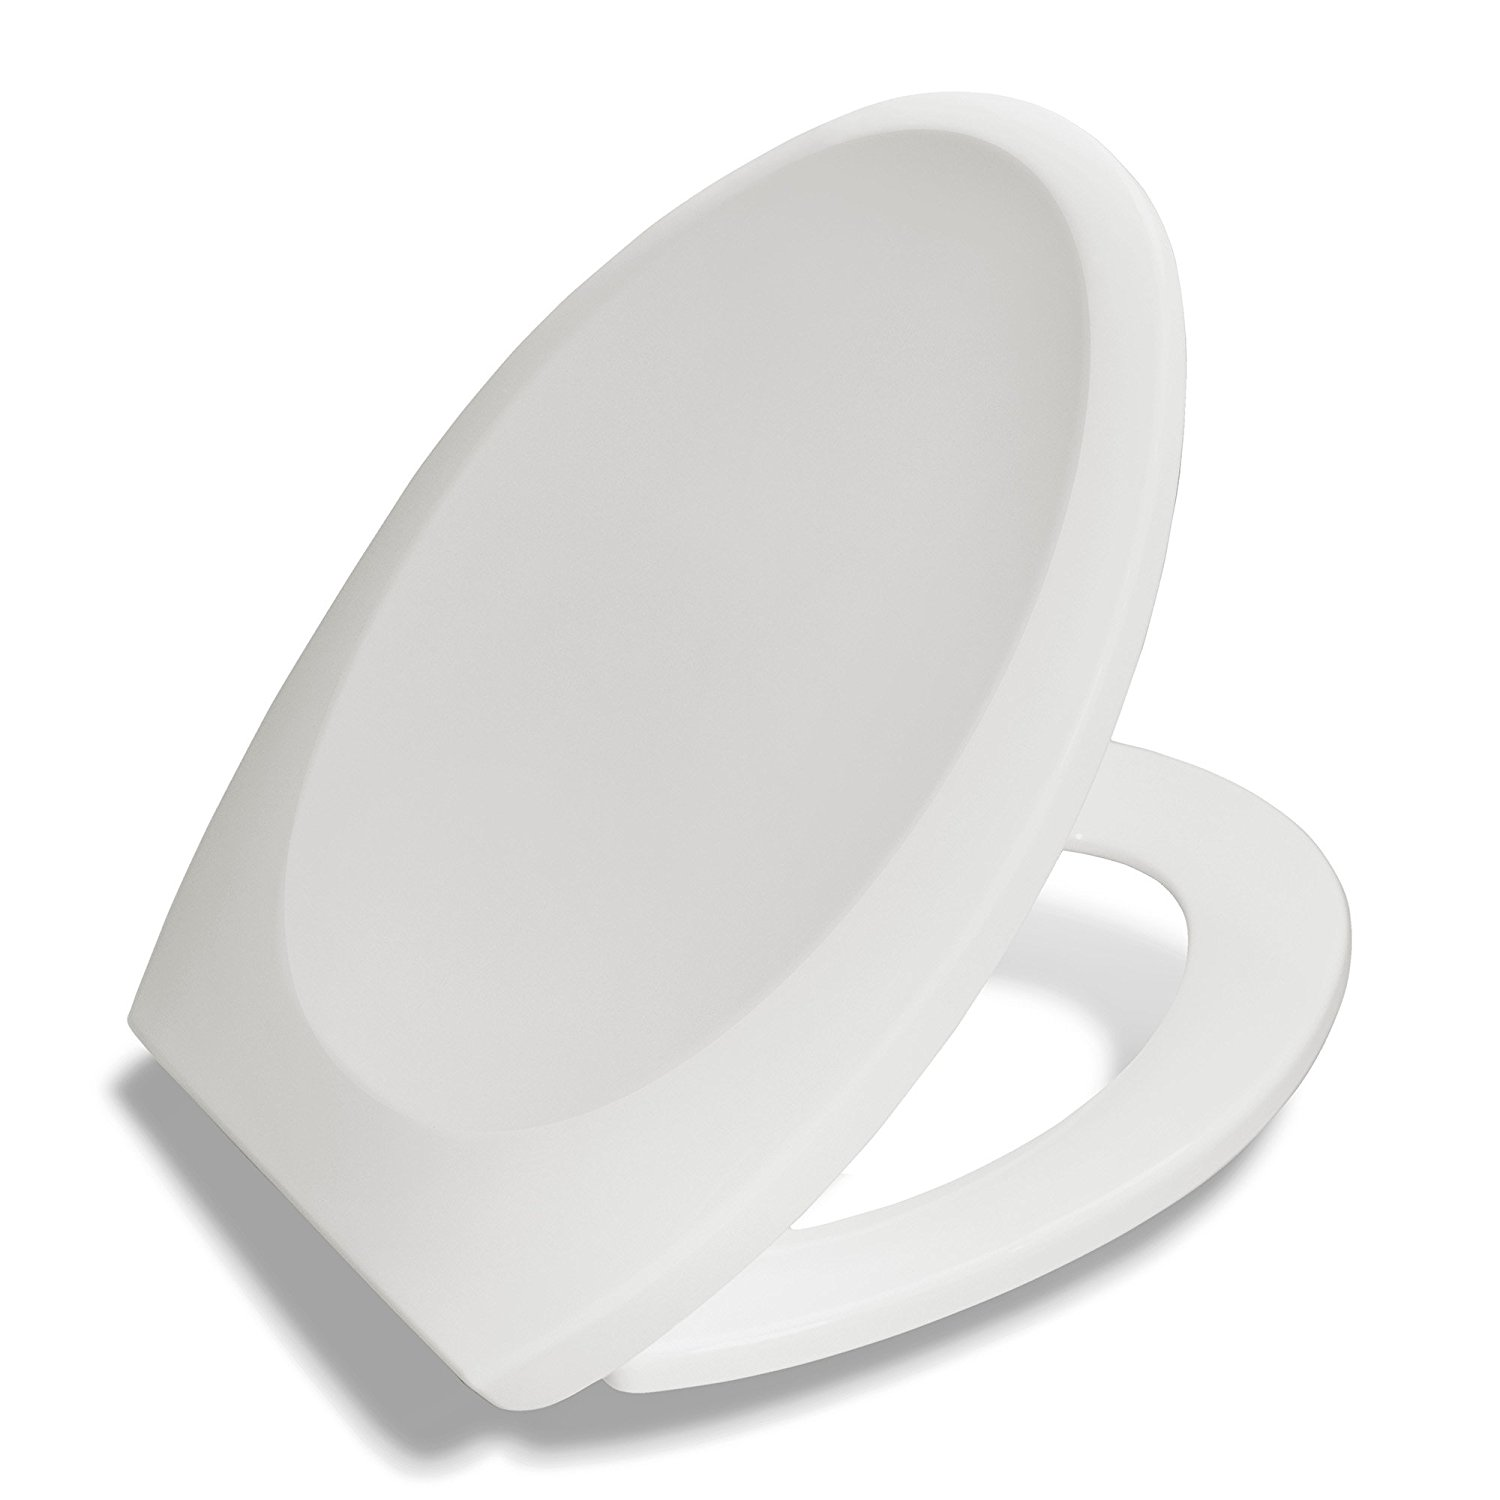 Bath Royale Premium Elongated Toilet Seat with Cover, White - Slow Close, Quick Release for Easy Cleaning. Fits All Elongated (Oval) Toilets